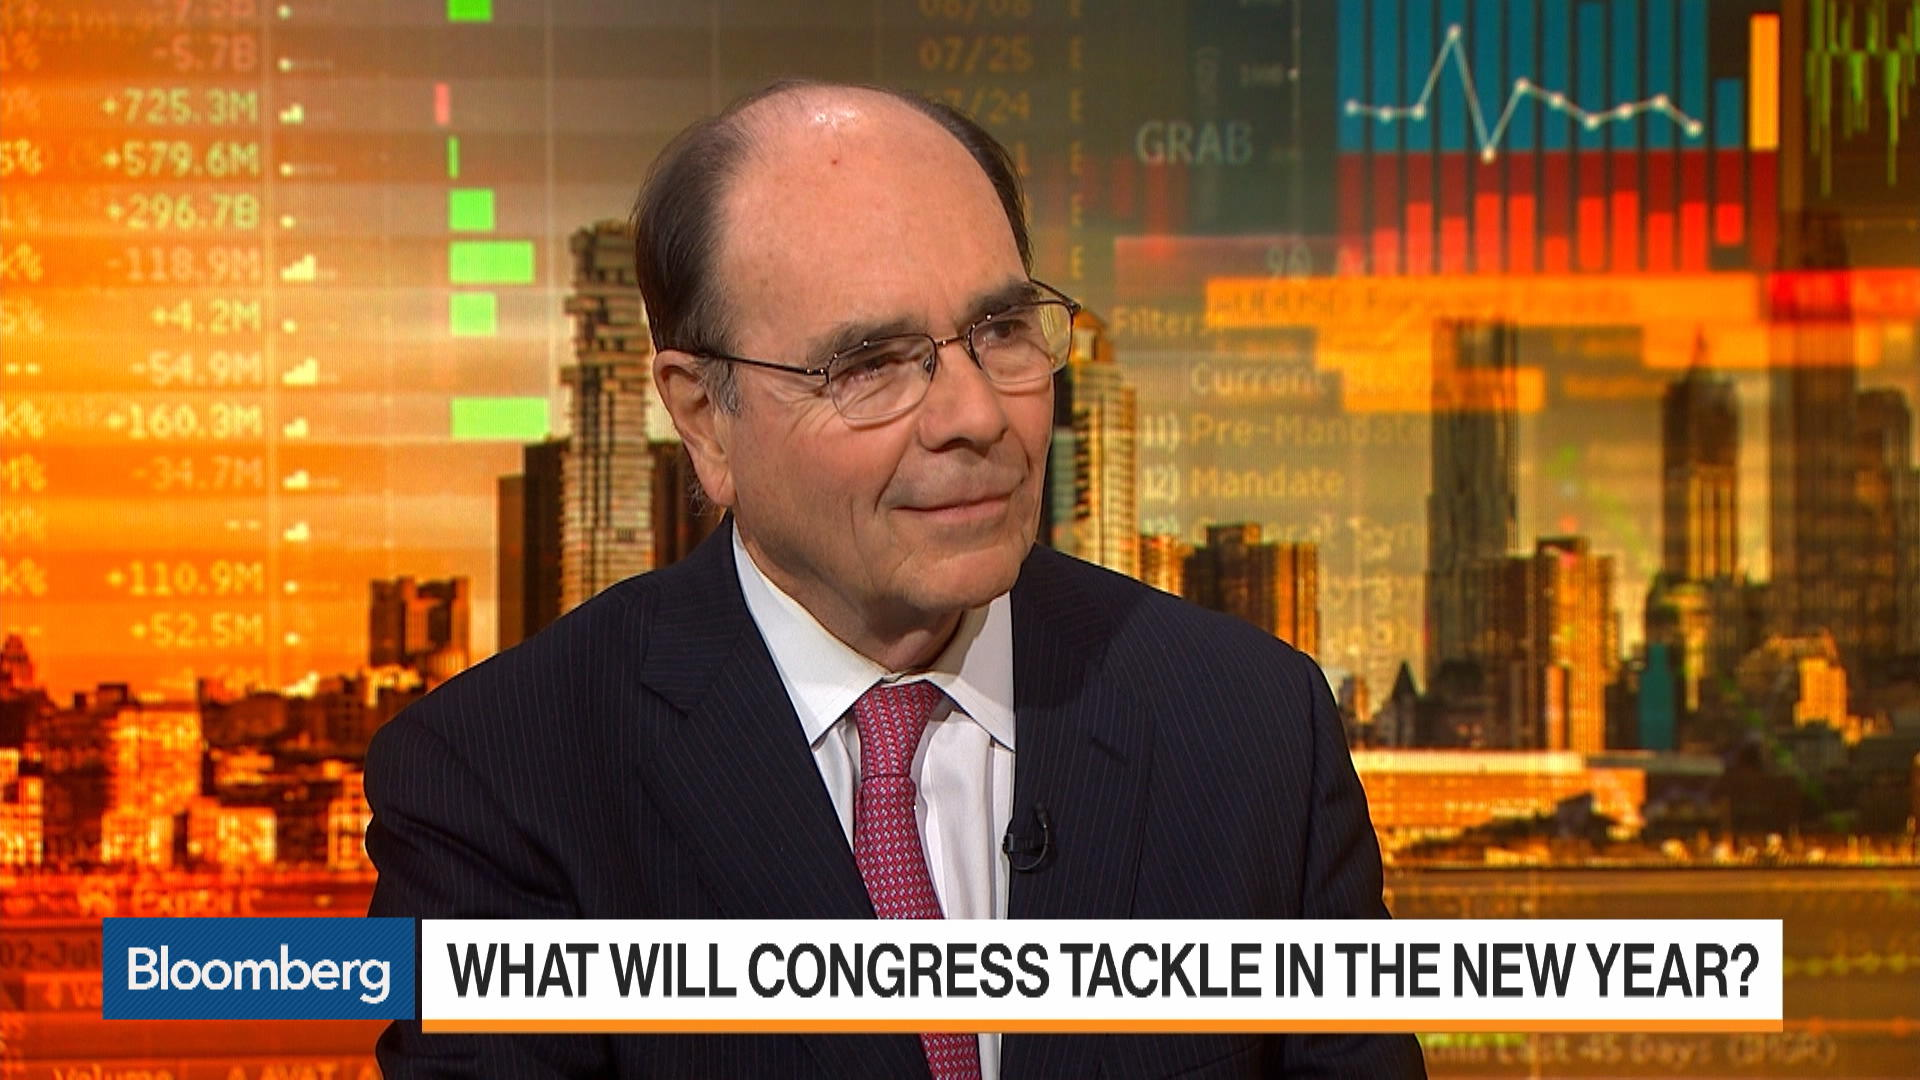 Fannie and Freddie Have Too Much Market Share, James Lockhart Says